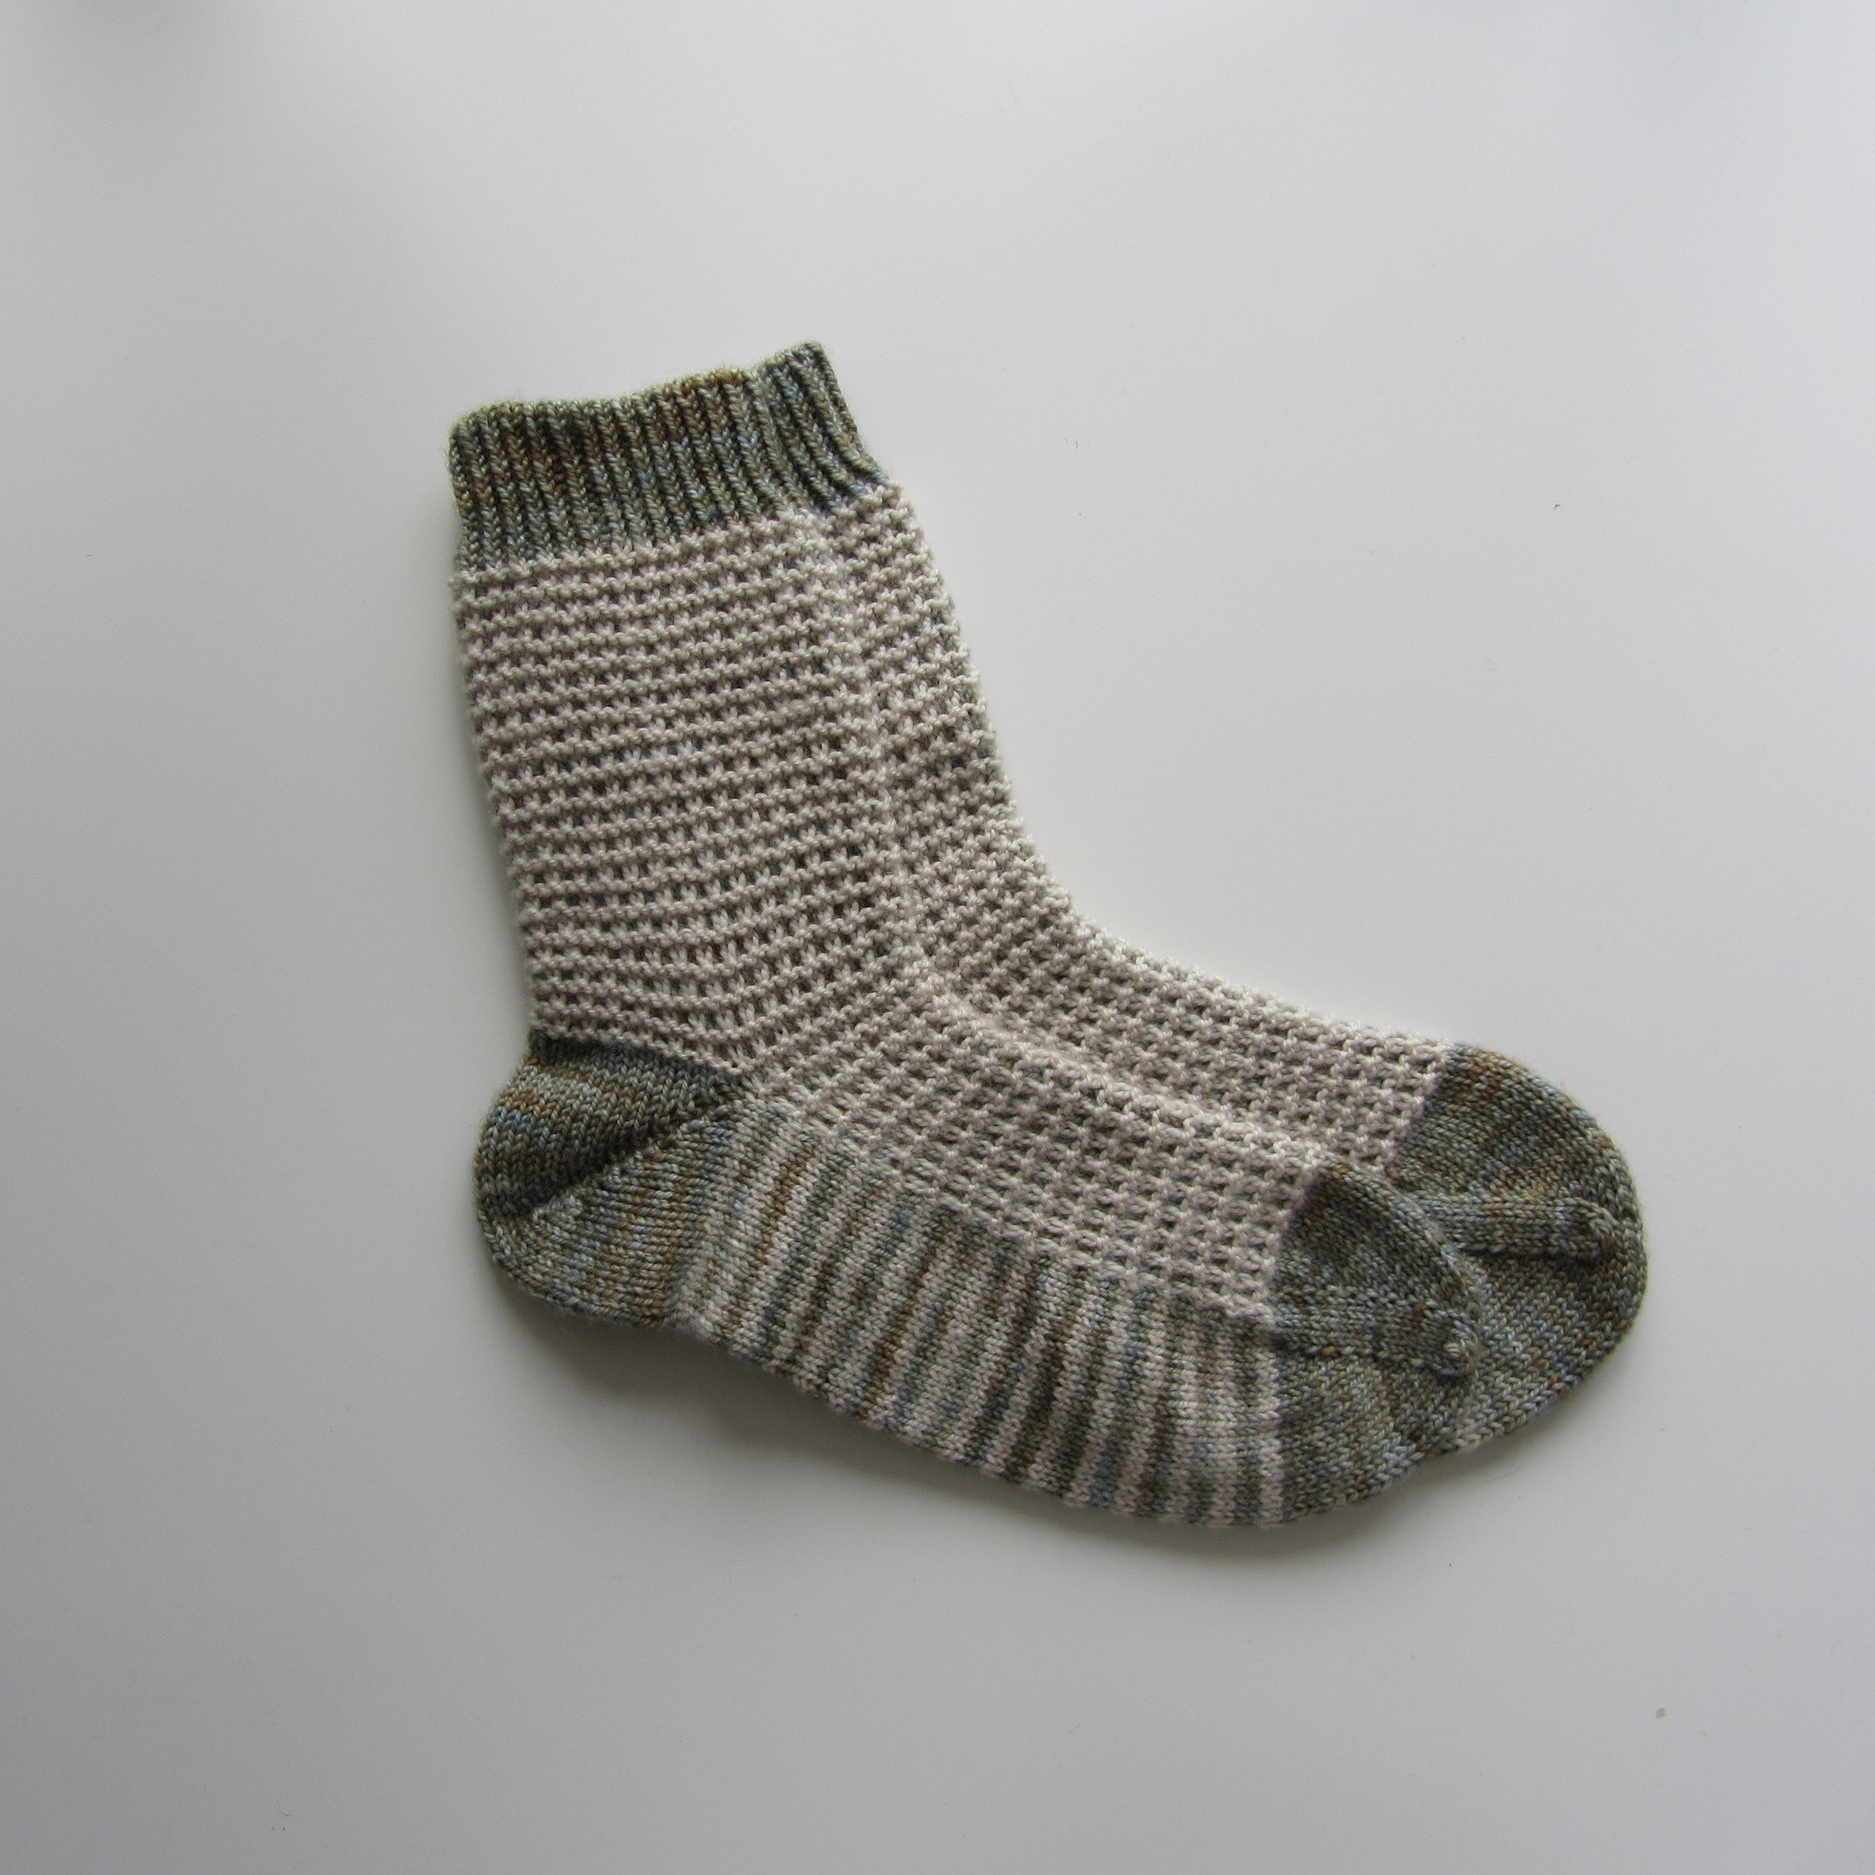 How to Knit German Short Rows